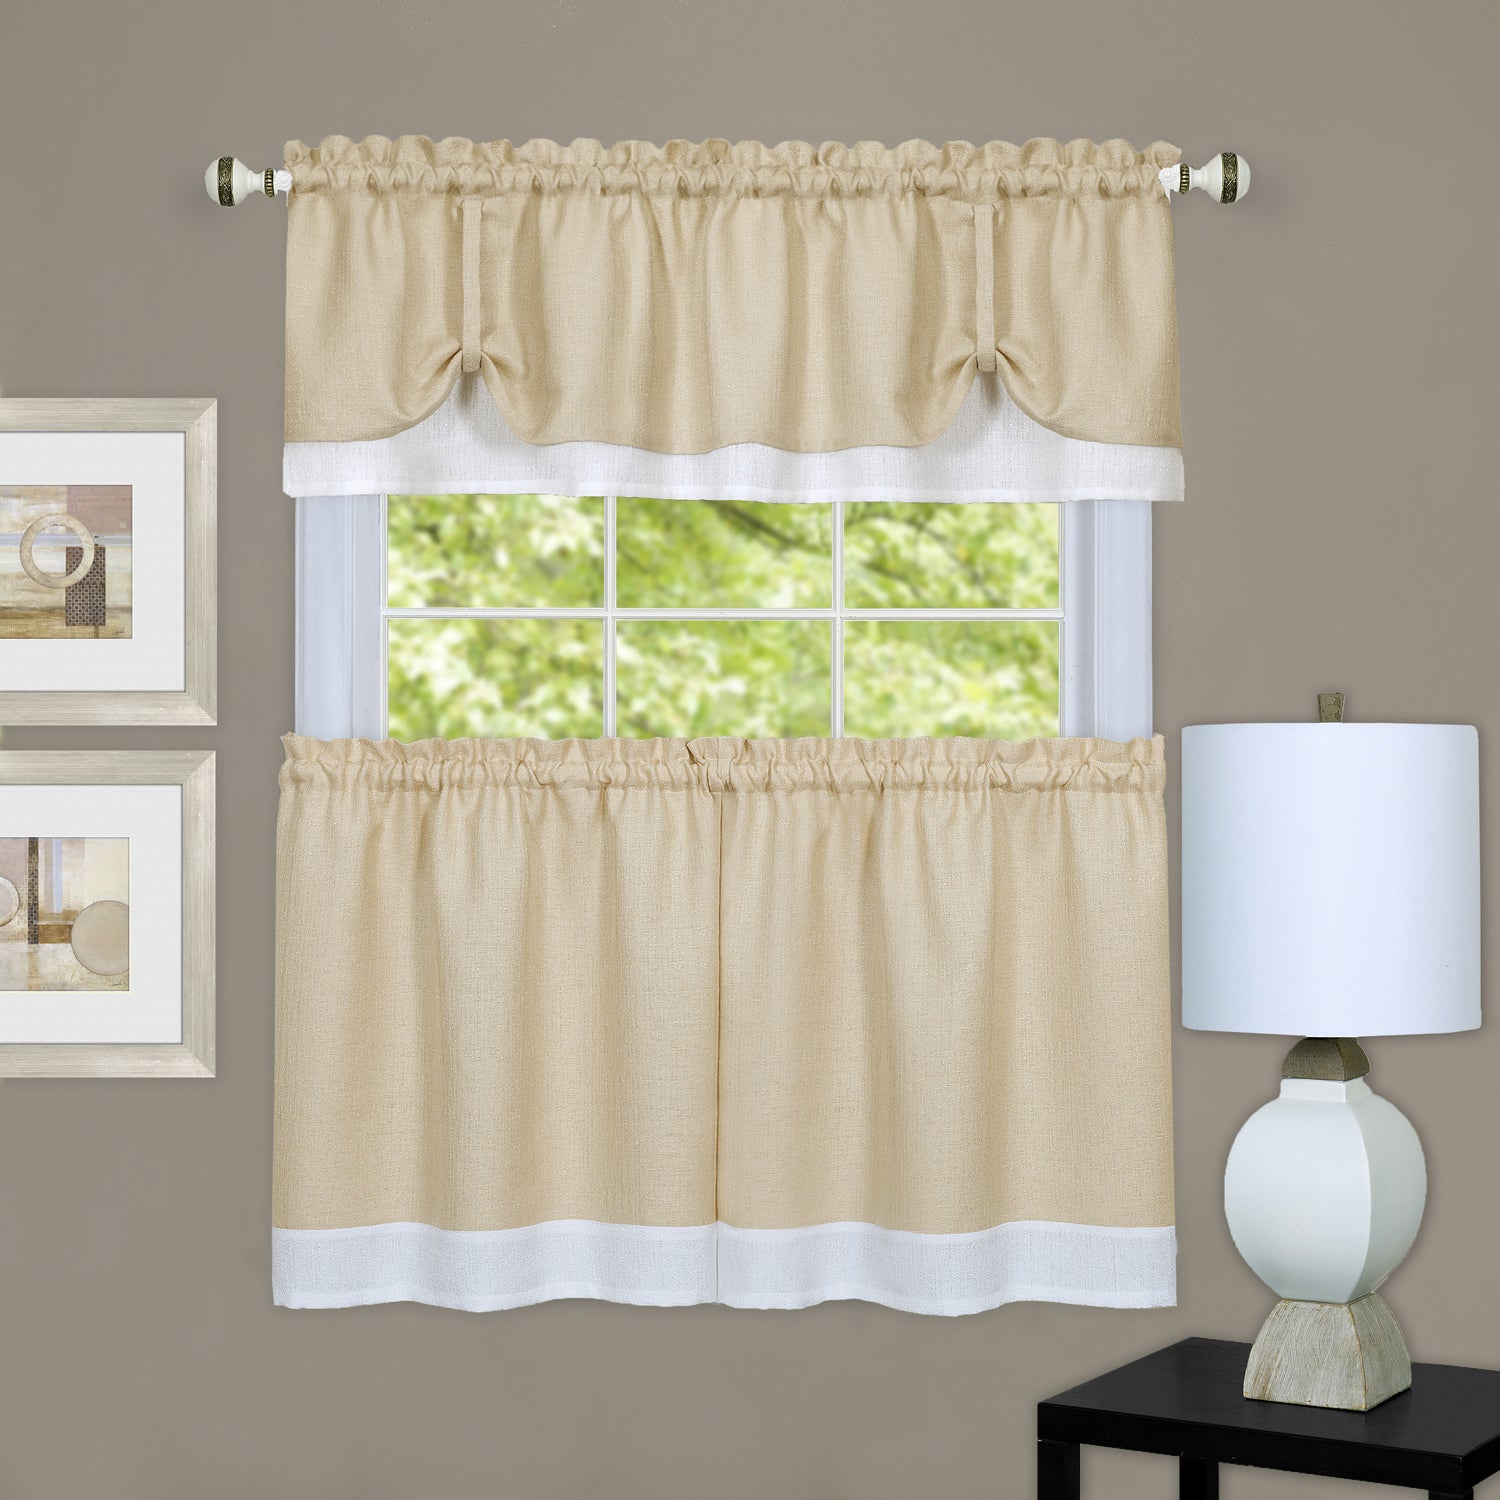 Details About Double Layer Tie Up Tan/ White 3 Piece Tier And Valance Window Curtain Set Regarding Dakota Window Curtain Tier Pair And Valance Sets (View 19 of 20)